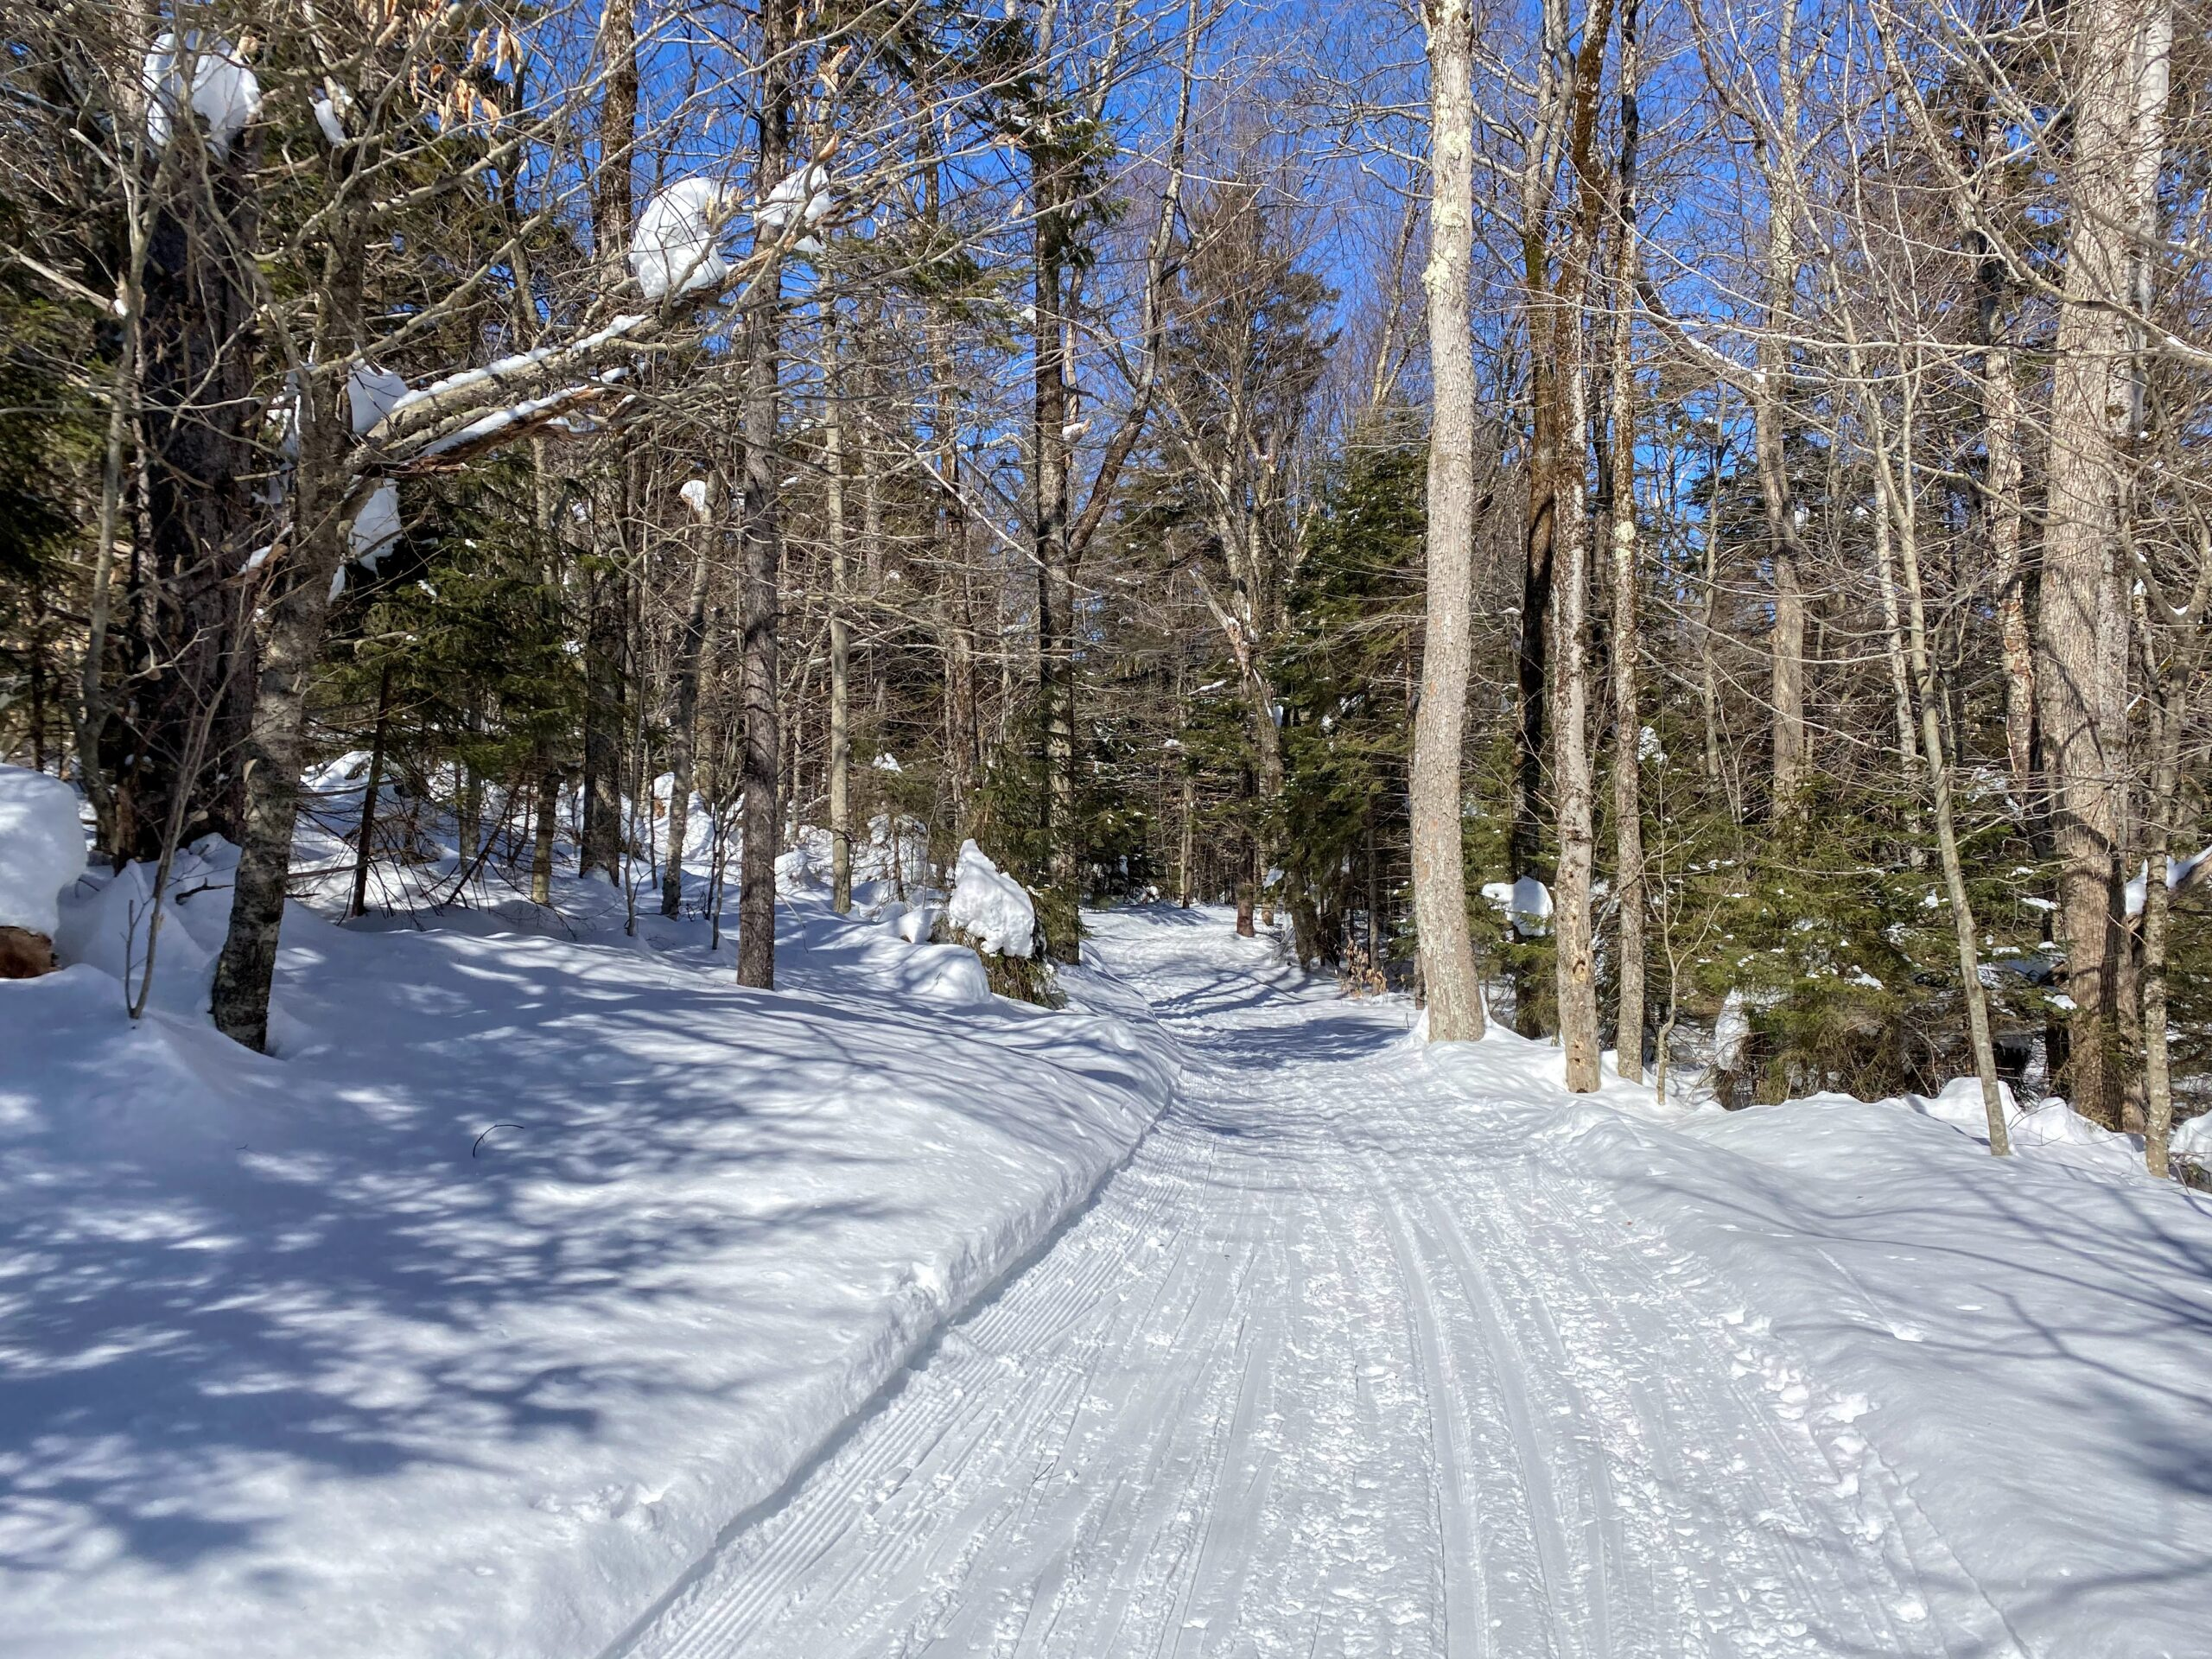 Snowy trail in the woods with ski tracks with blue sky background